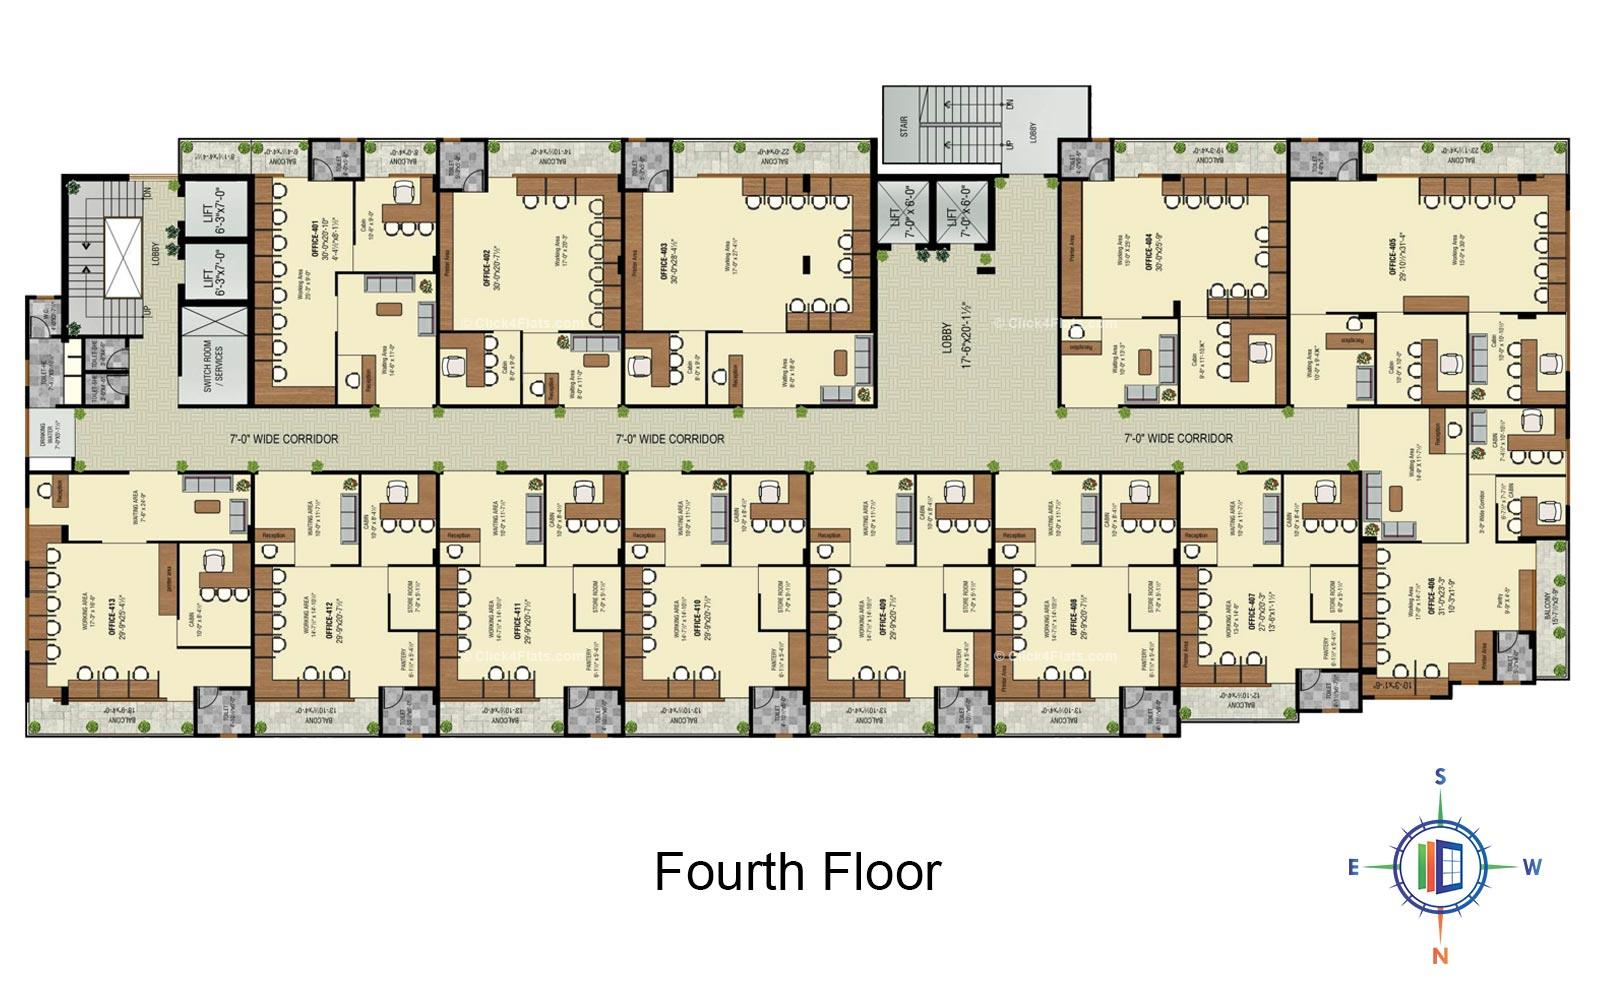 Golden Leaf Fourth Floor Plan